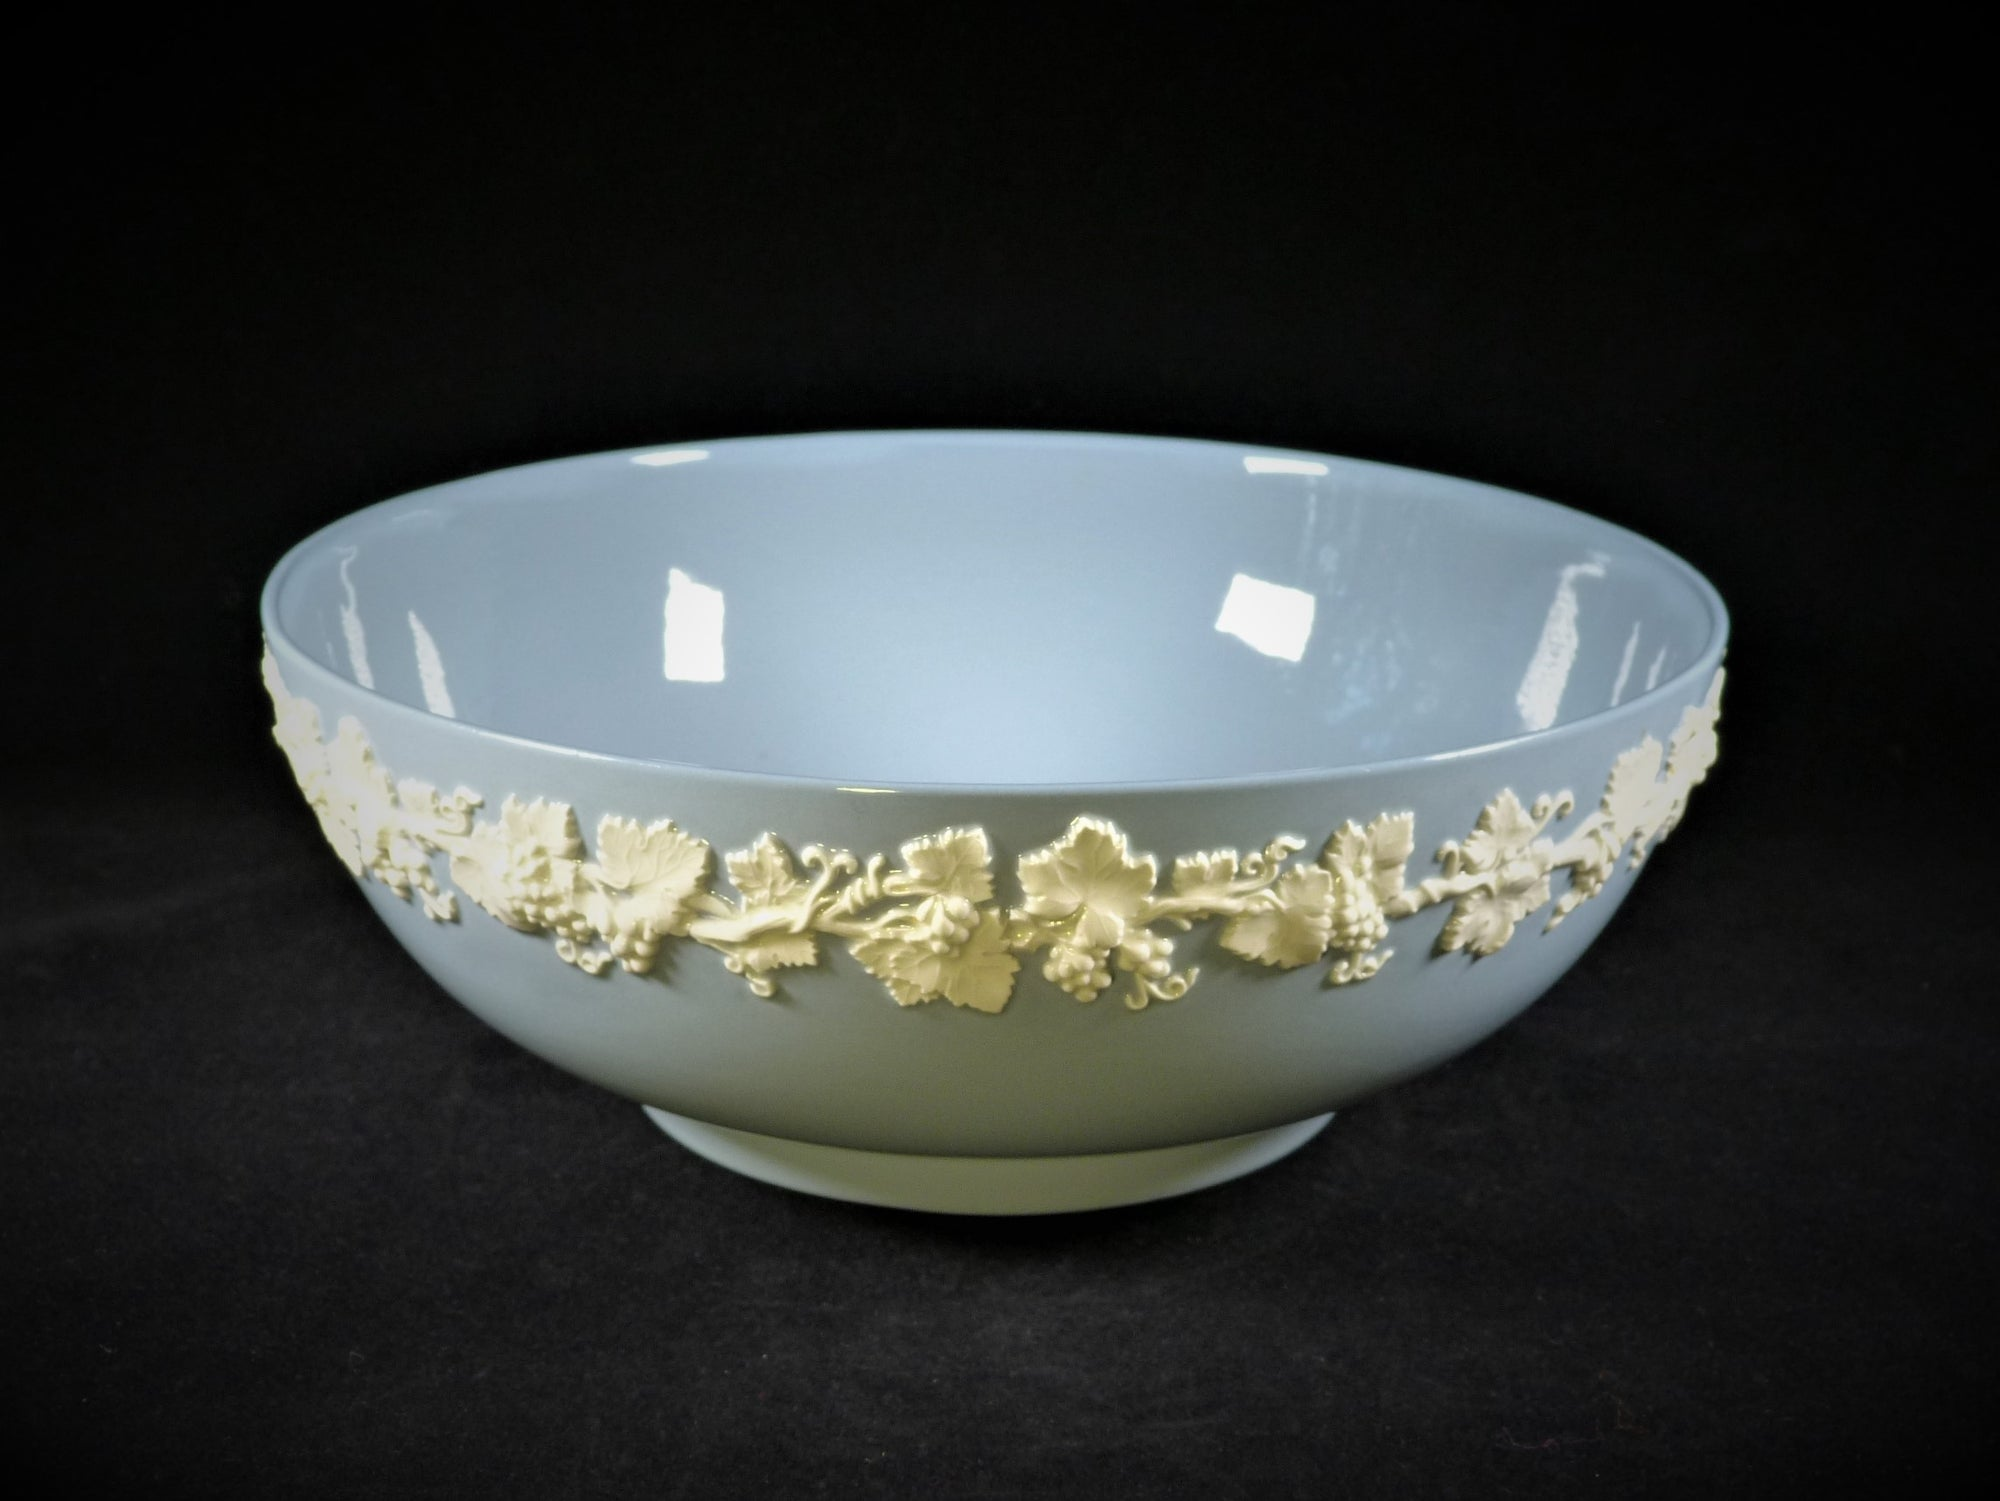 Wedgwood Queen's Ware Bowl, Blue and White Bowl